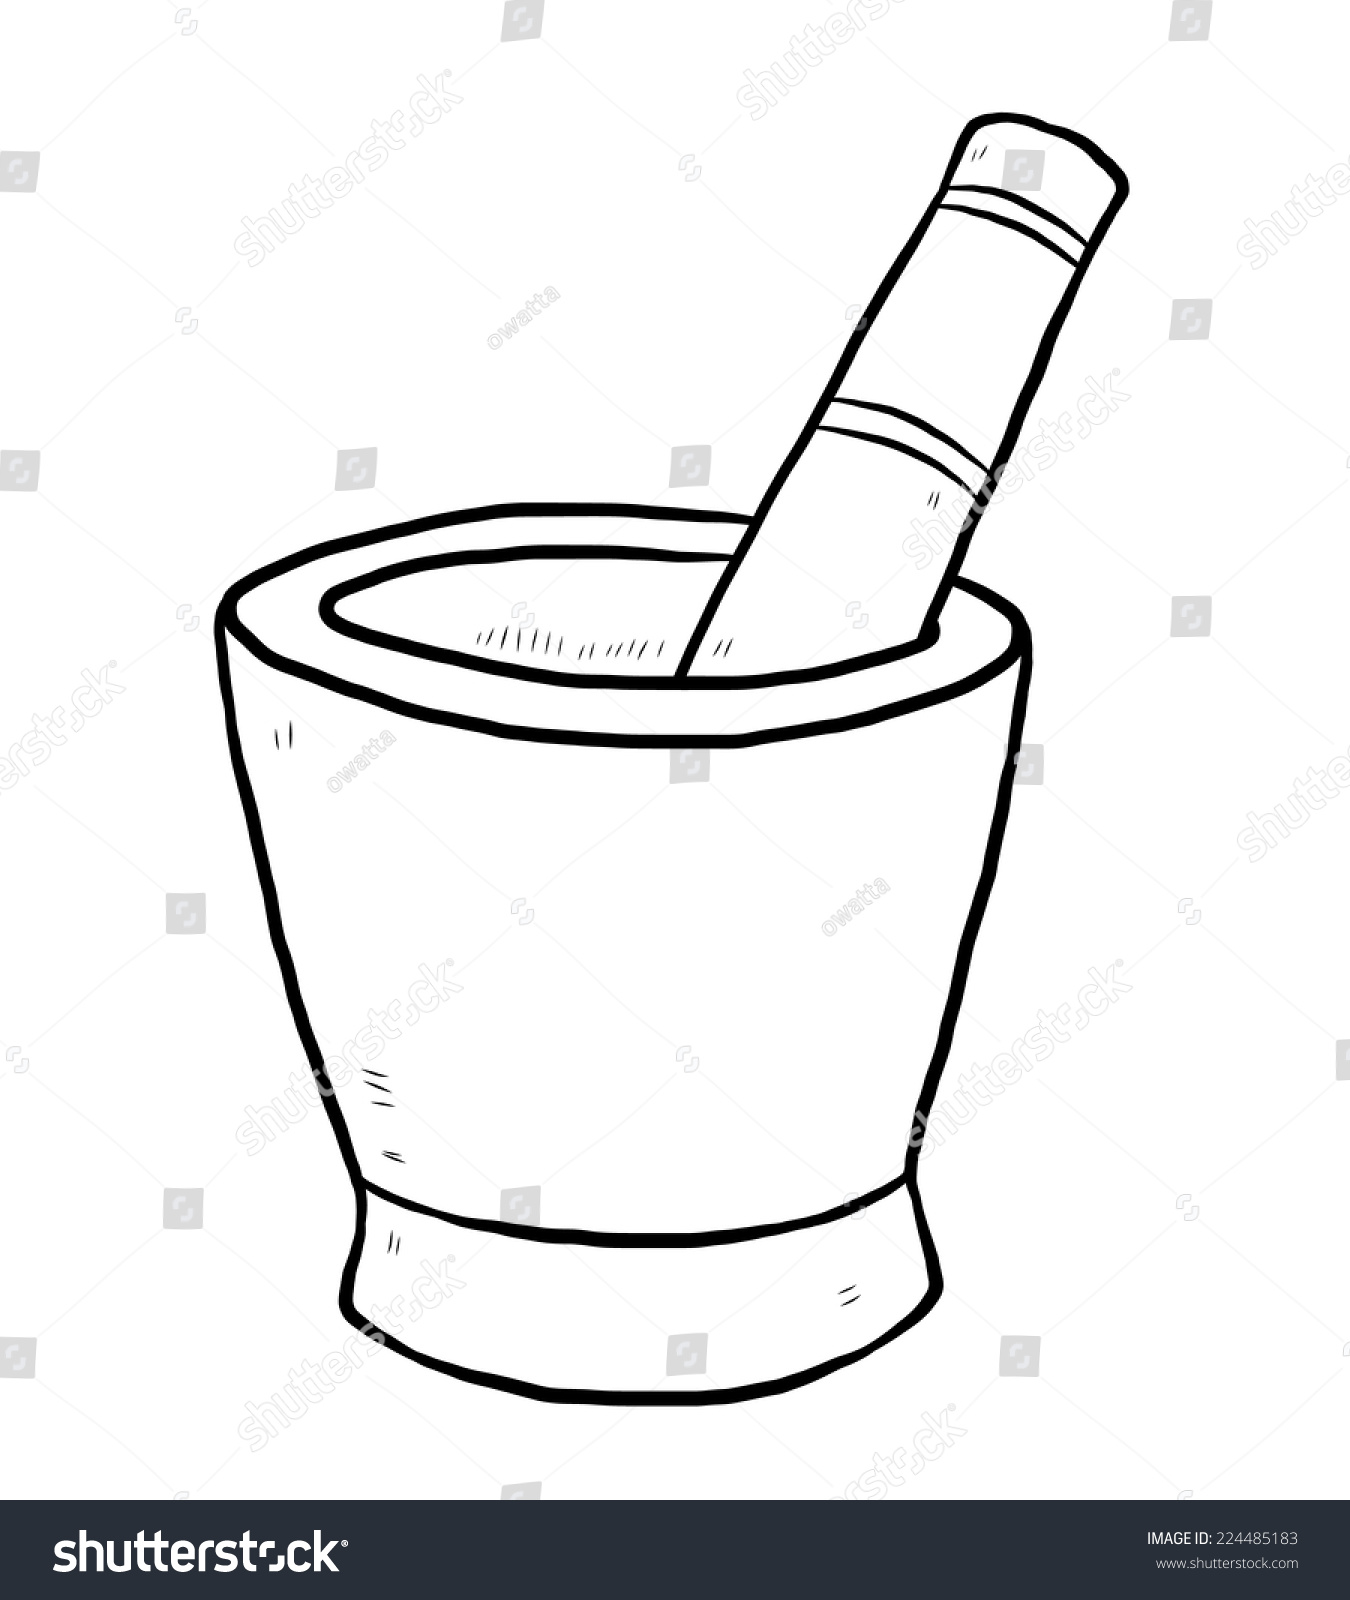 Royalty-free Mortar and pestle / cartoon vector and… #224485183 ... for Mortar And Pestle Drawing  111bof